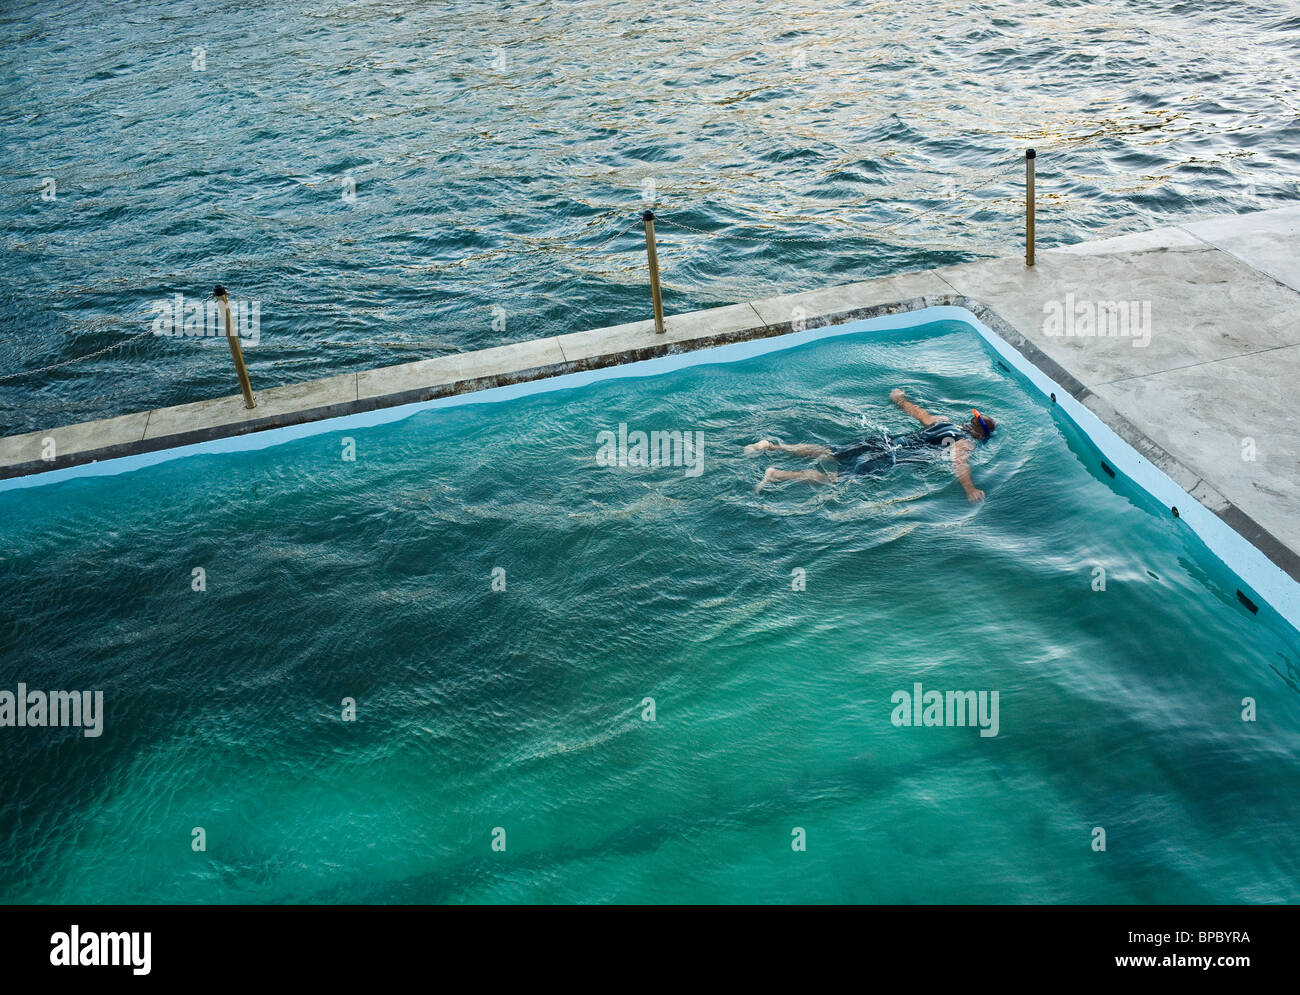 A swimmer floating and snorkeling in a seaside pool. - Stock Image